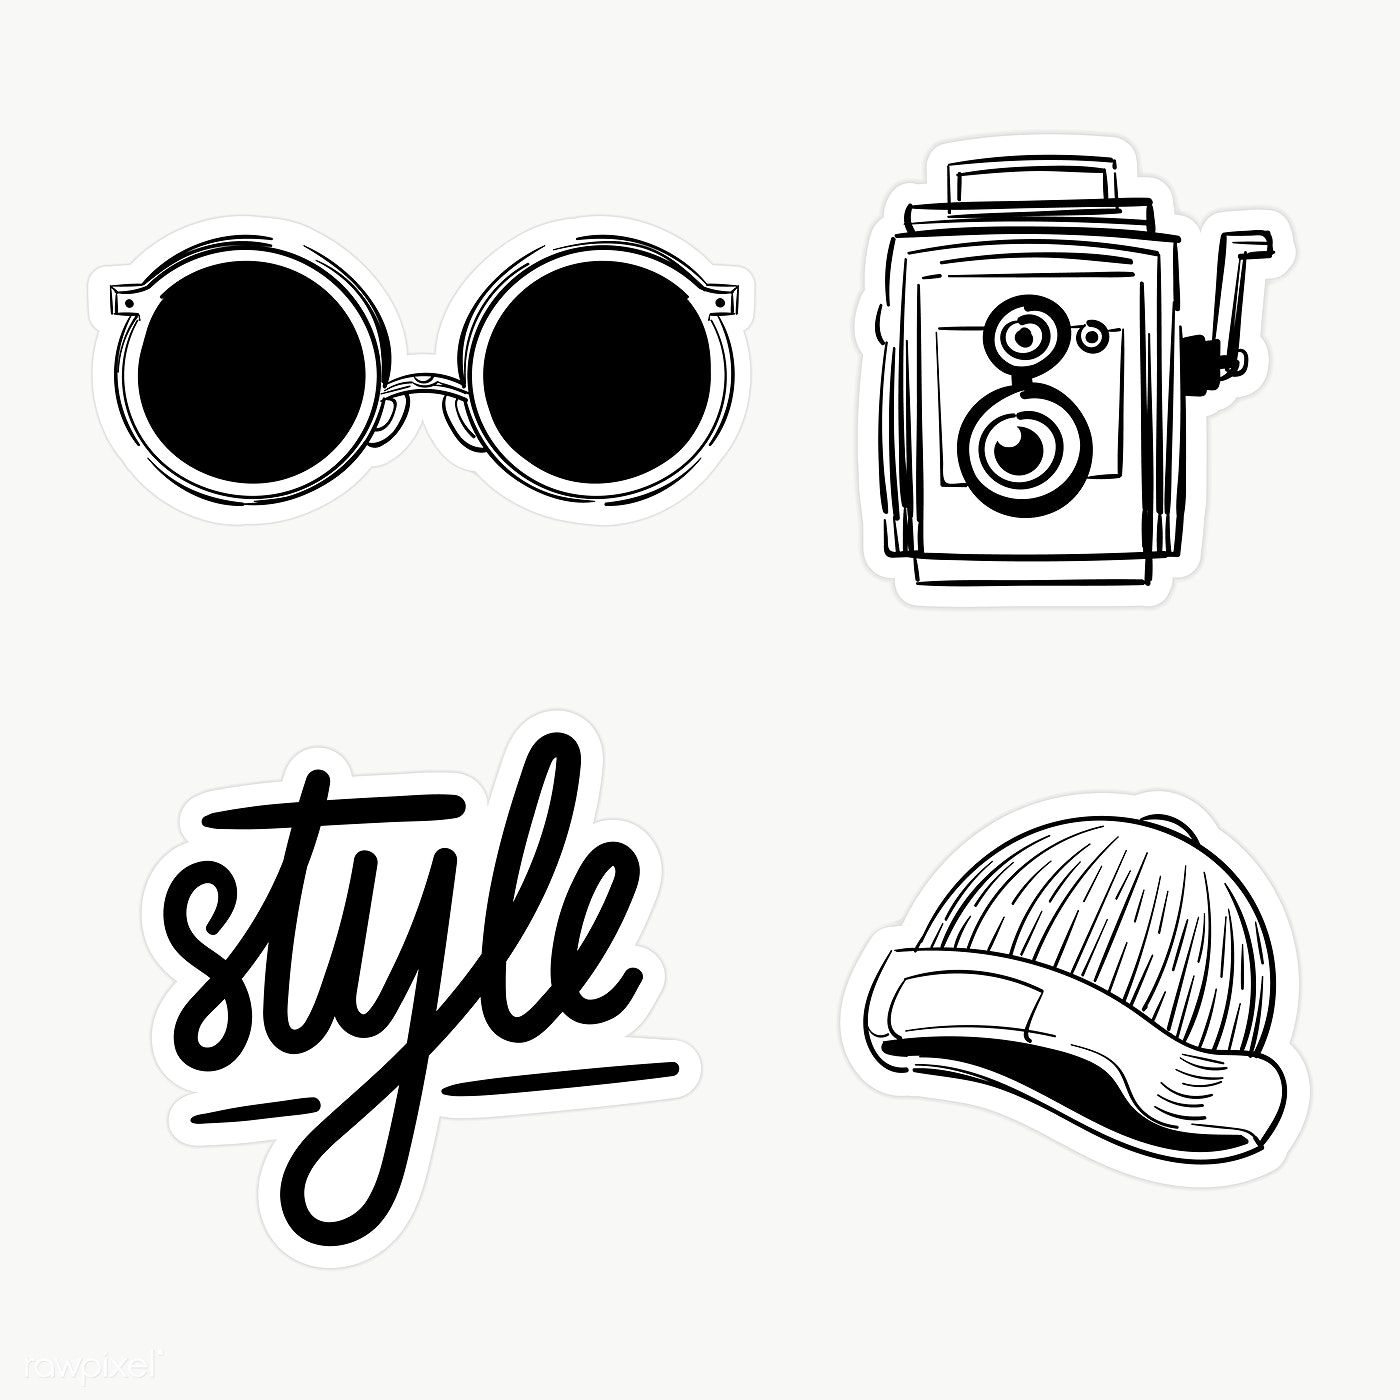 Download Premium Png Of Set Of Black And White Sticker Doodle Transparent Black And White Stickers Black And White Doodle Black Stickers